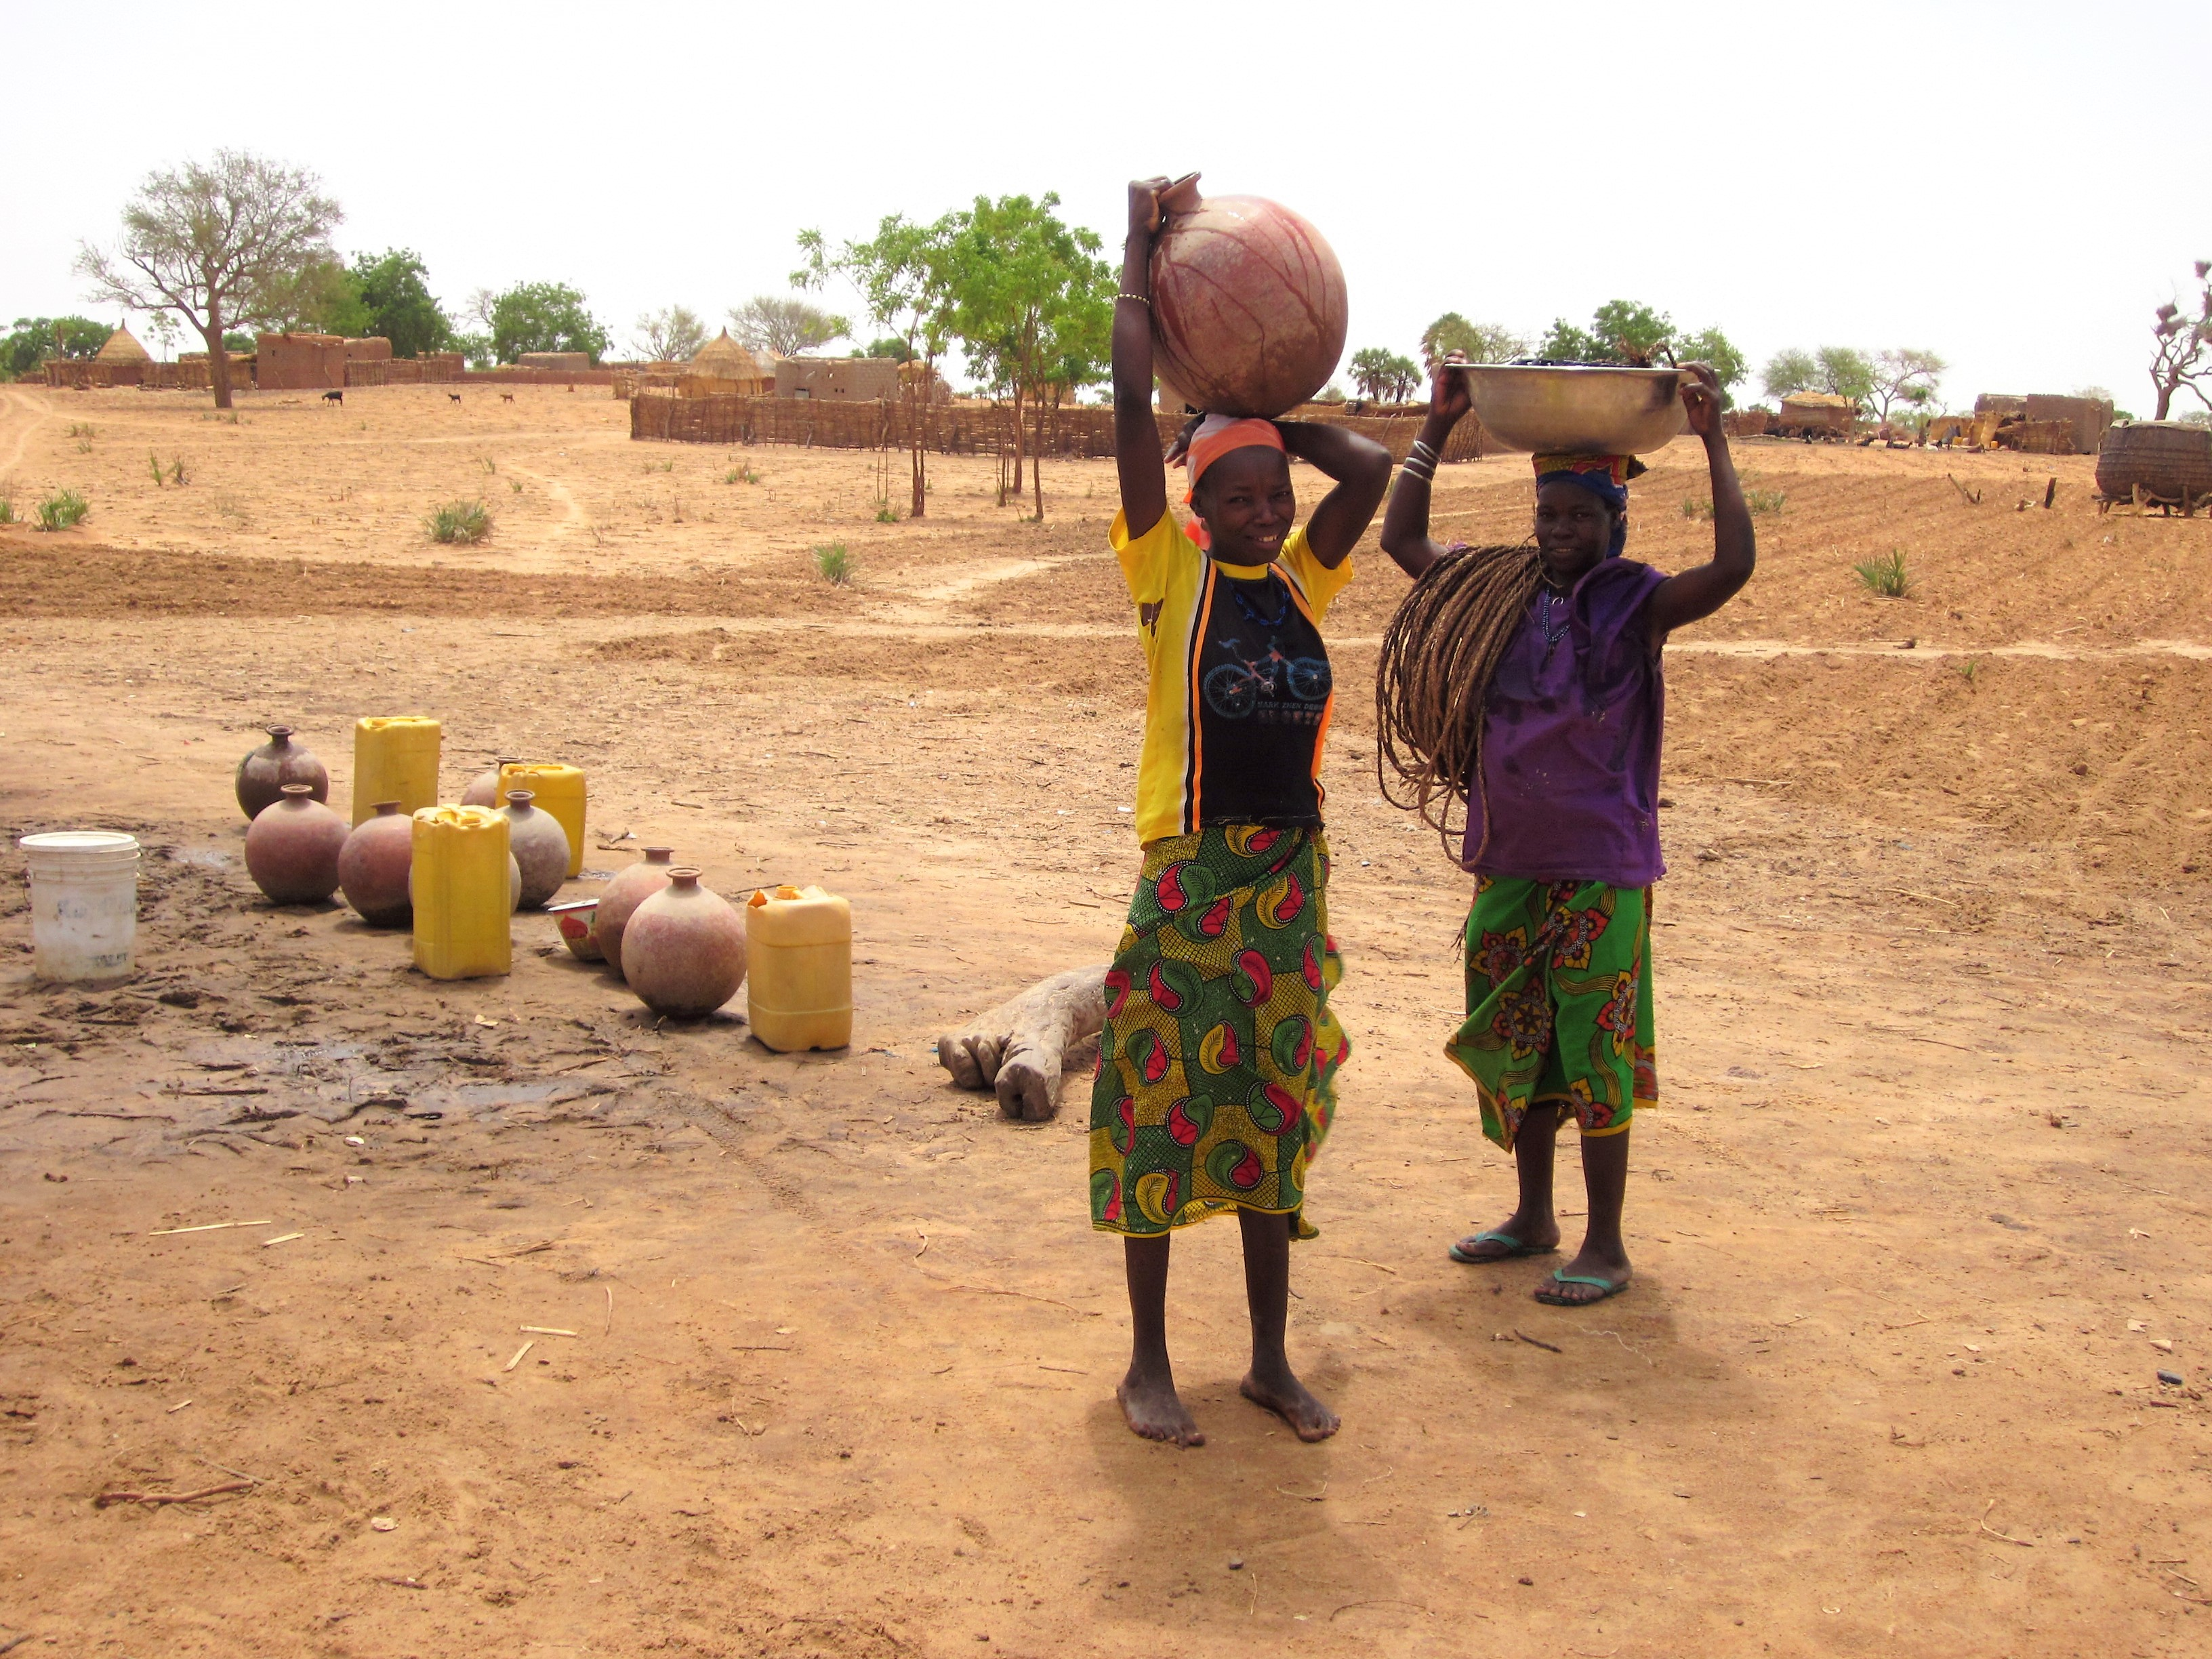 Girls in Niger who have been sent to the well to collect water for the family.